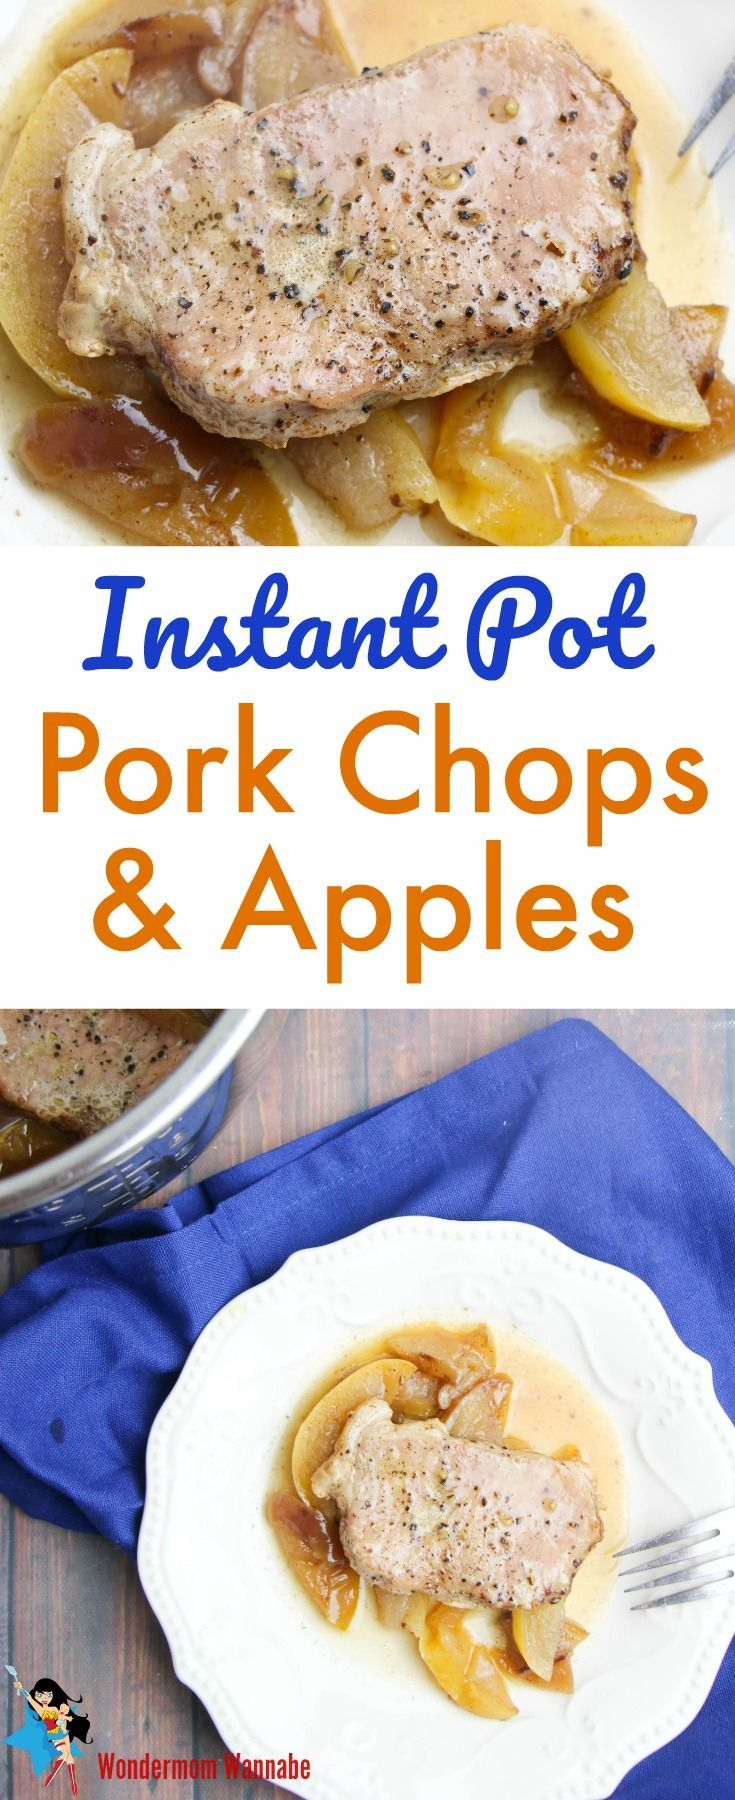 Pefect for fall! These instant pot pork chops and apples are moist, flavorful and delicious. Even better, kids love them!